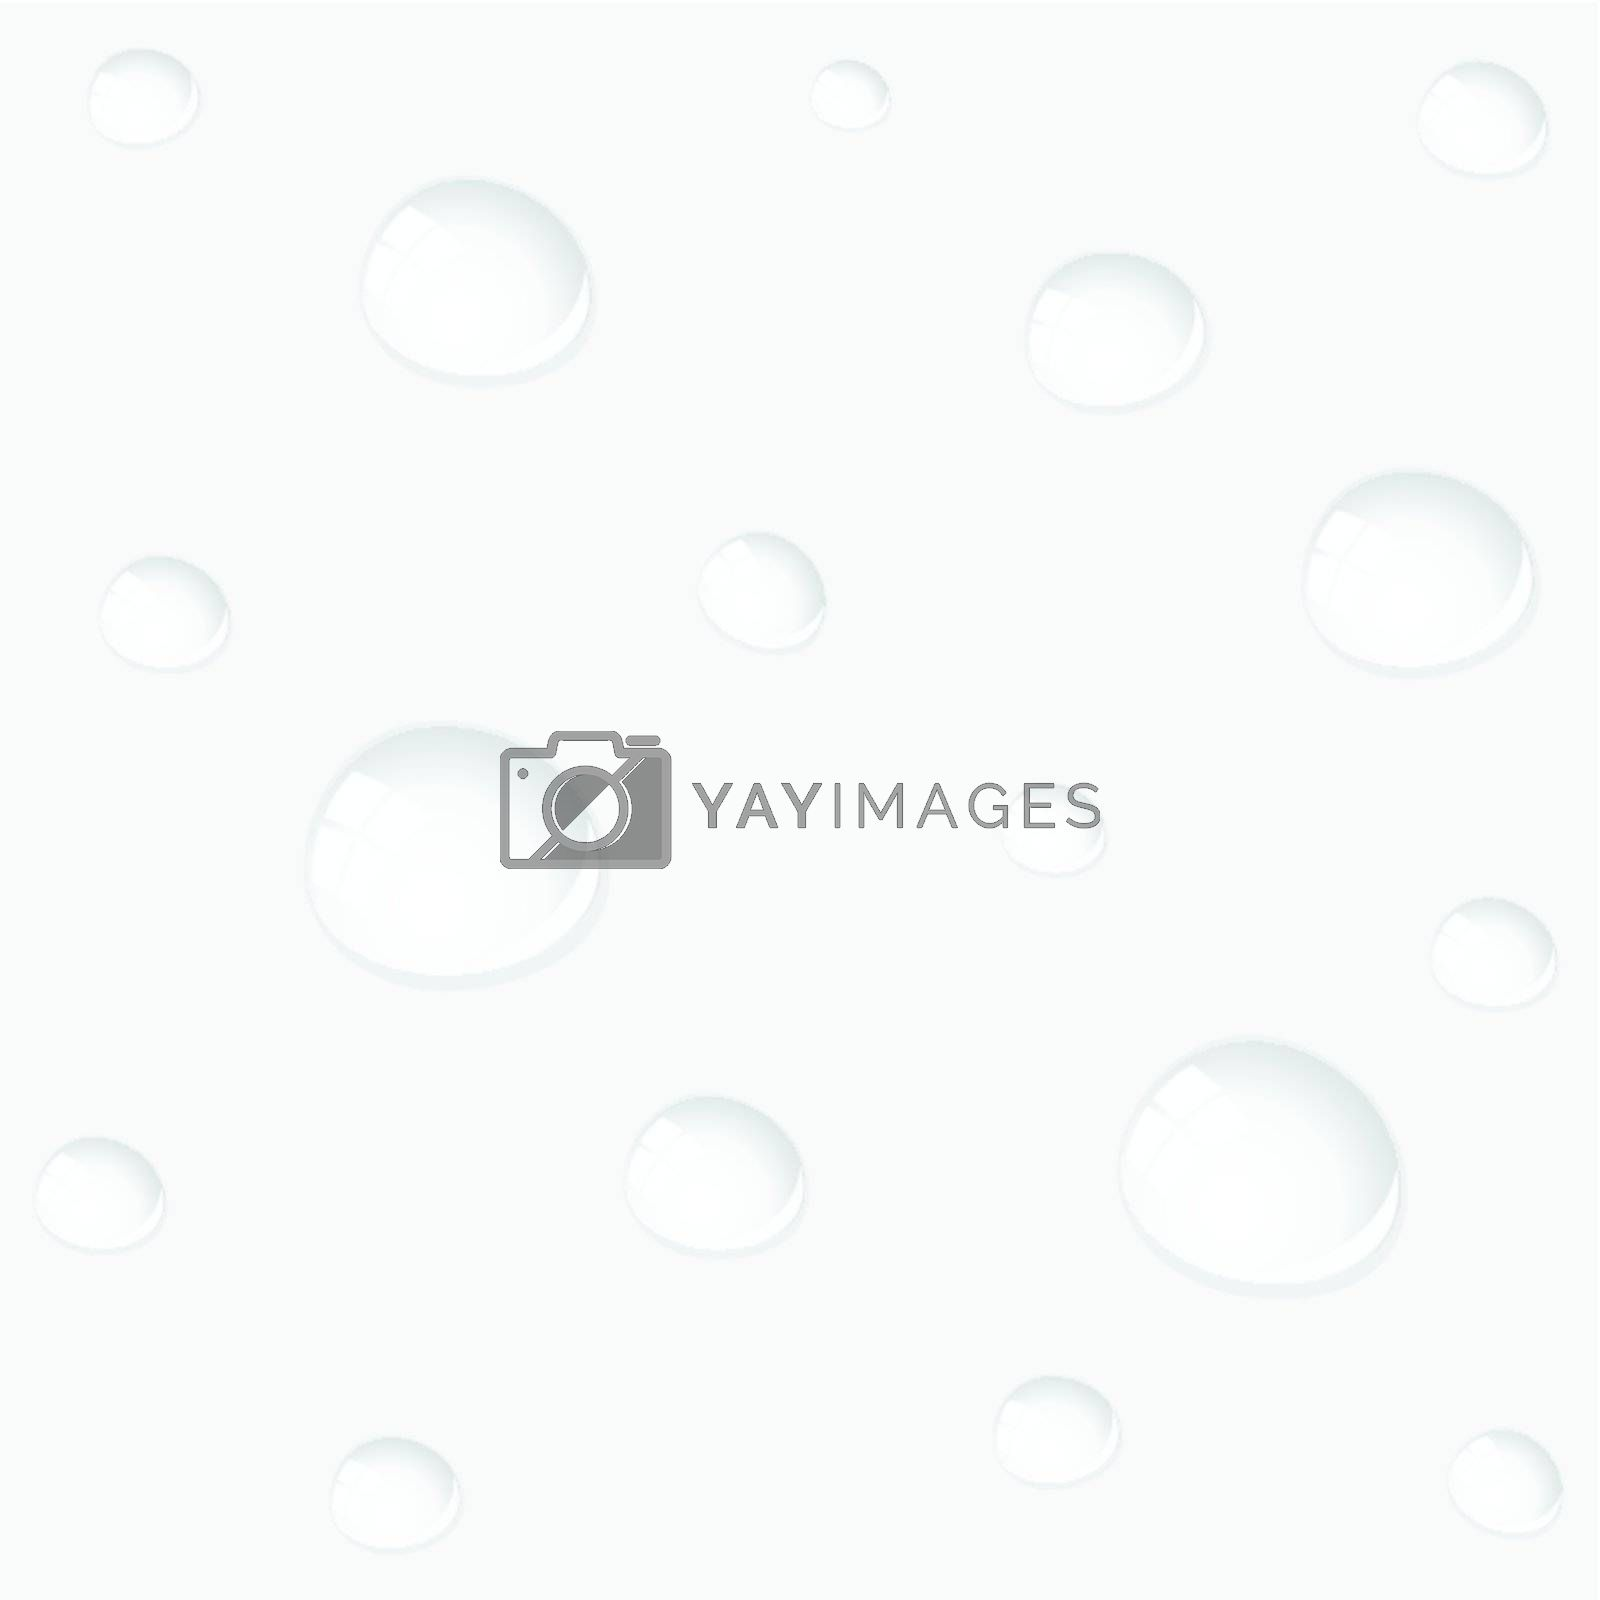 Water drops on grey glass. A vector illustration